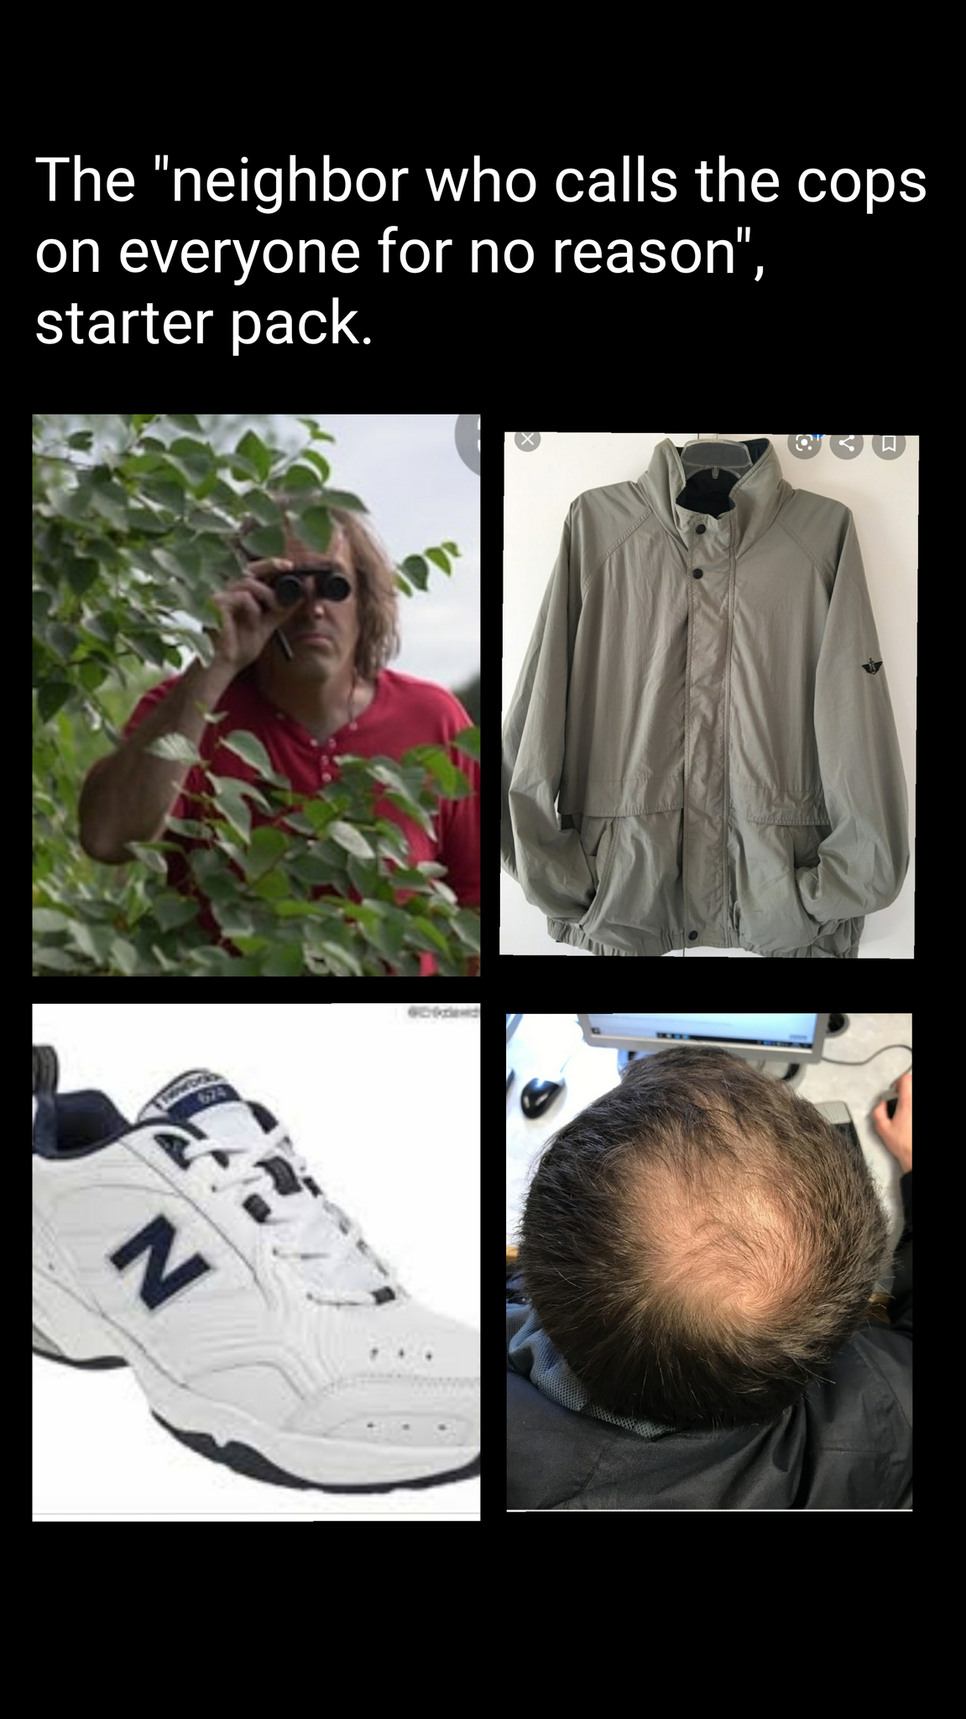 Neighbor who calls the cops on everyone starter pack - meme